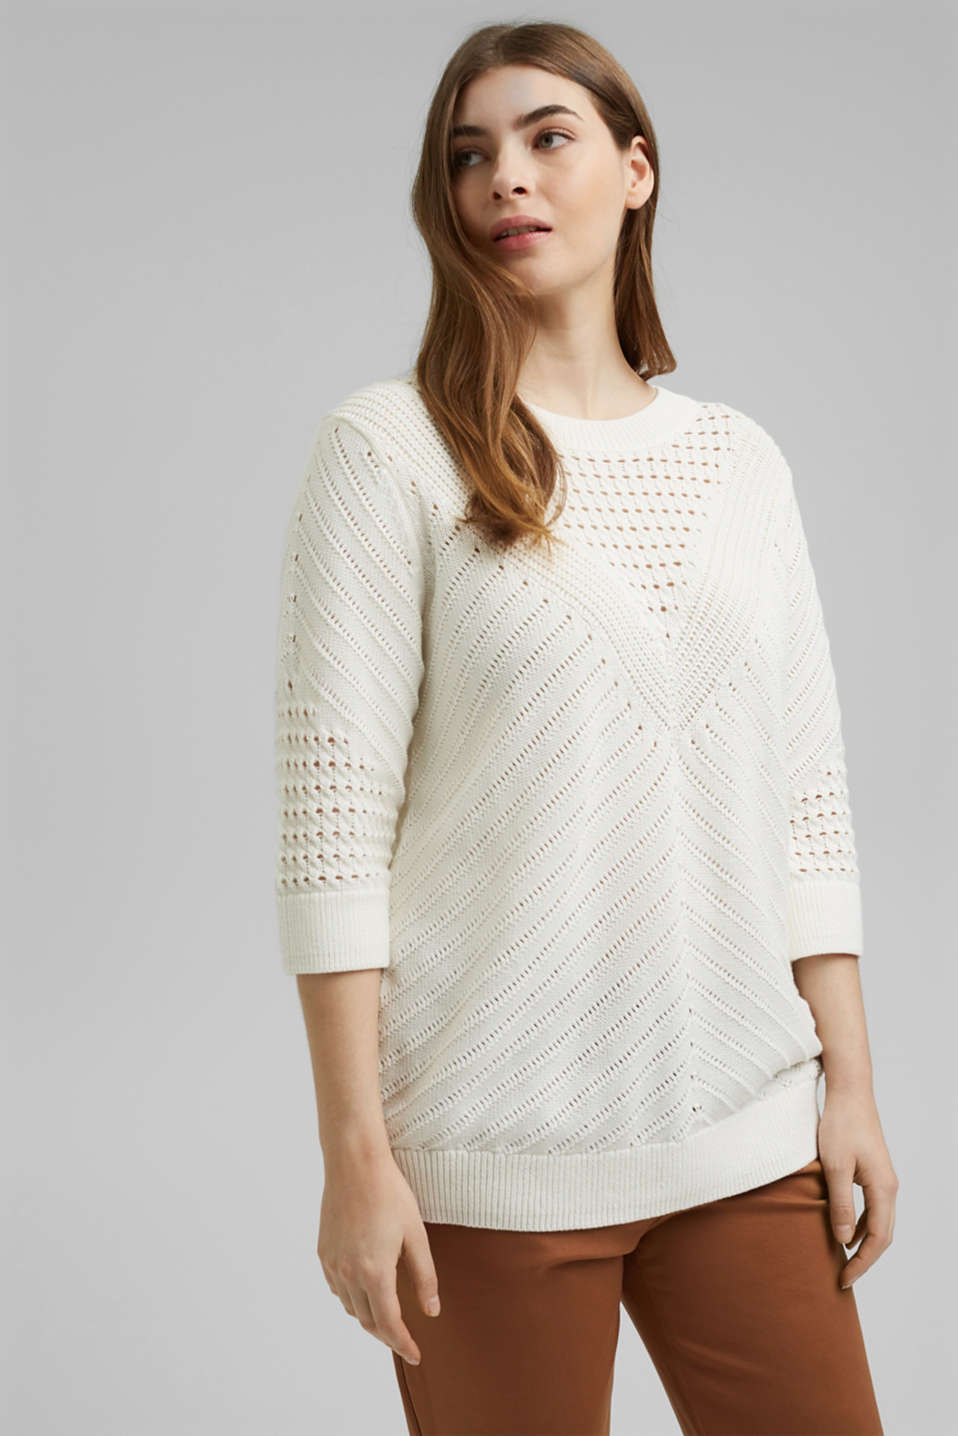 Esprit - Openwork jumper made of 100% organic cotton